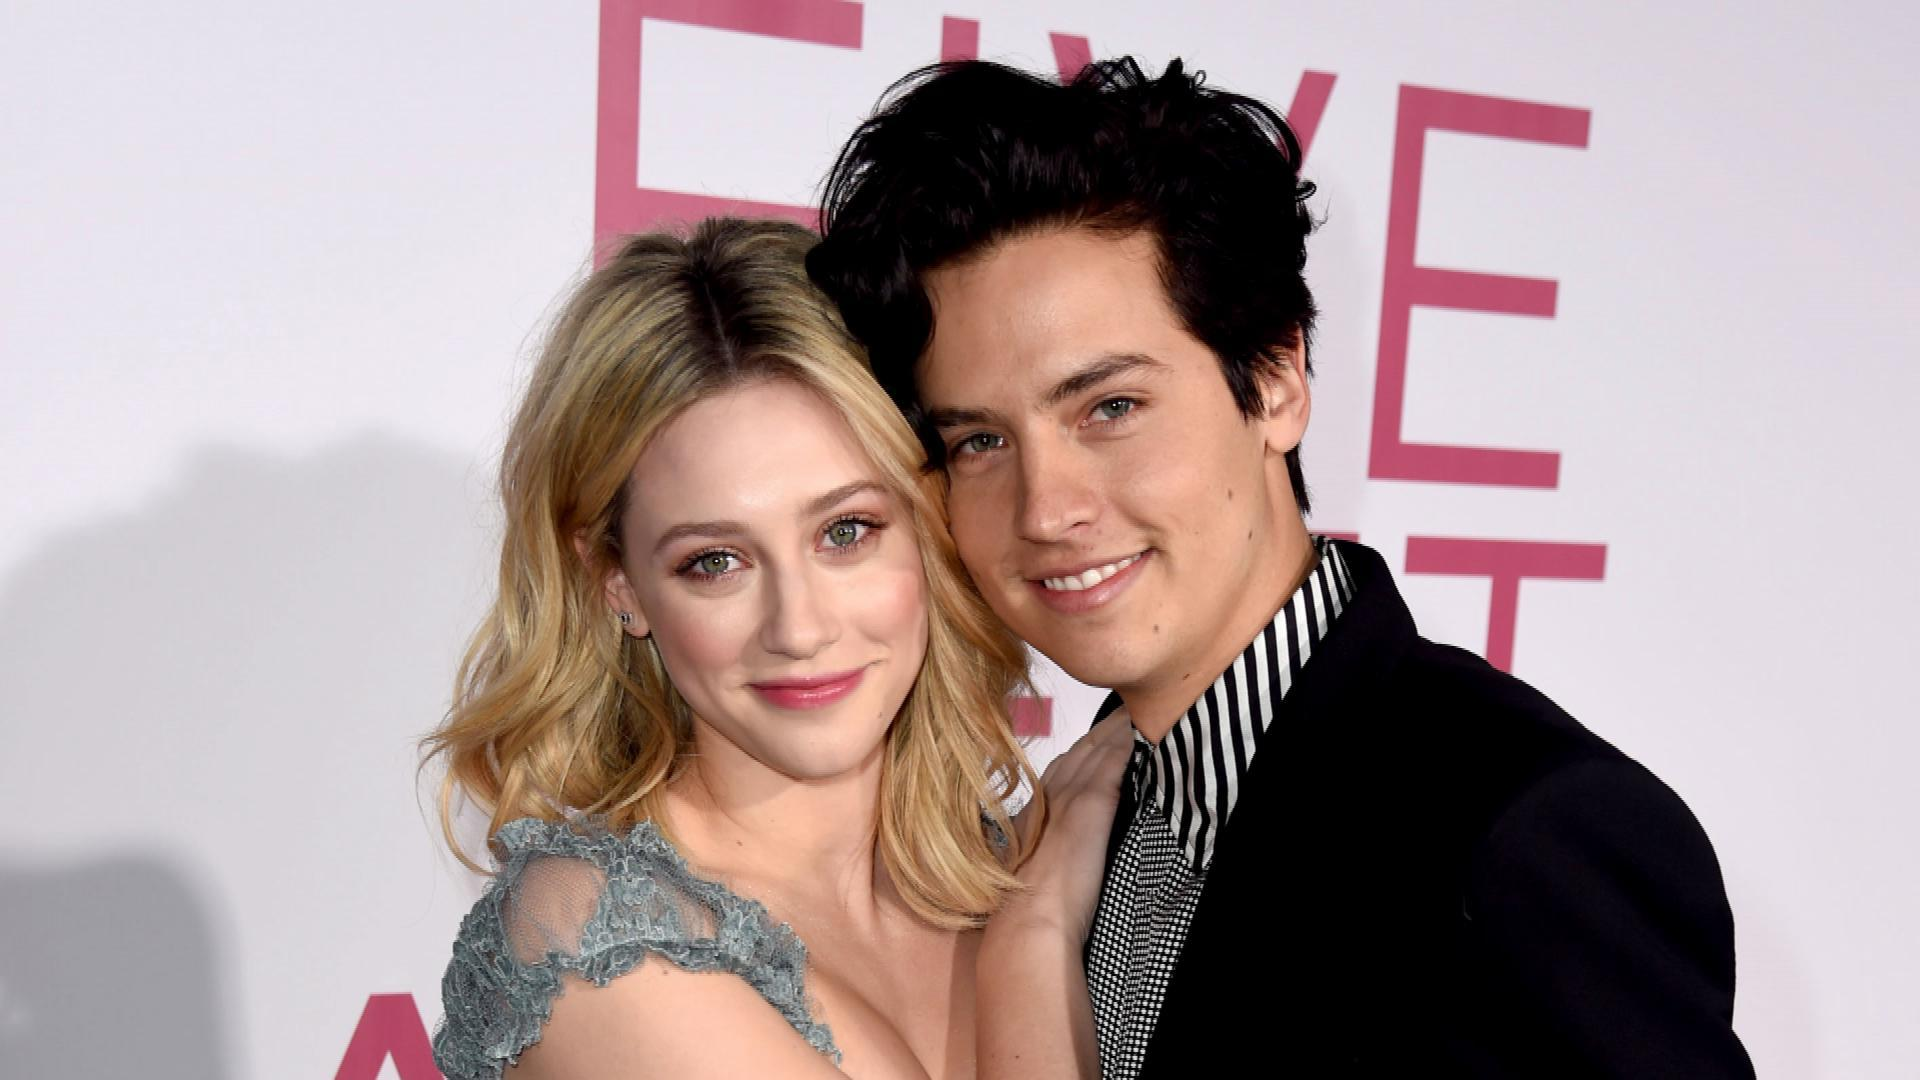 Lili Reinhart Shares 'Sappy' Love Poem for Cole Sprouse After